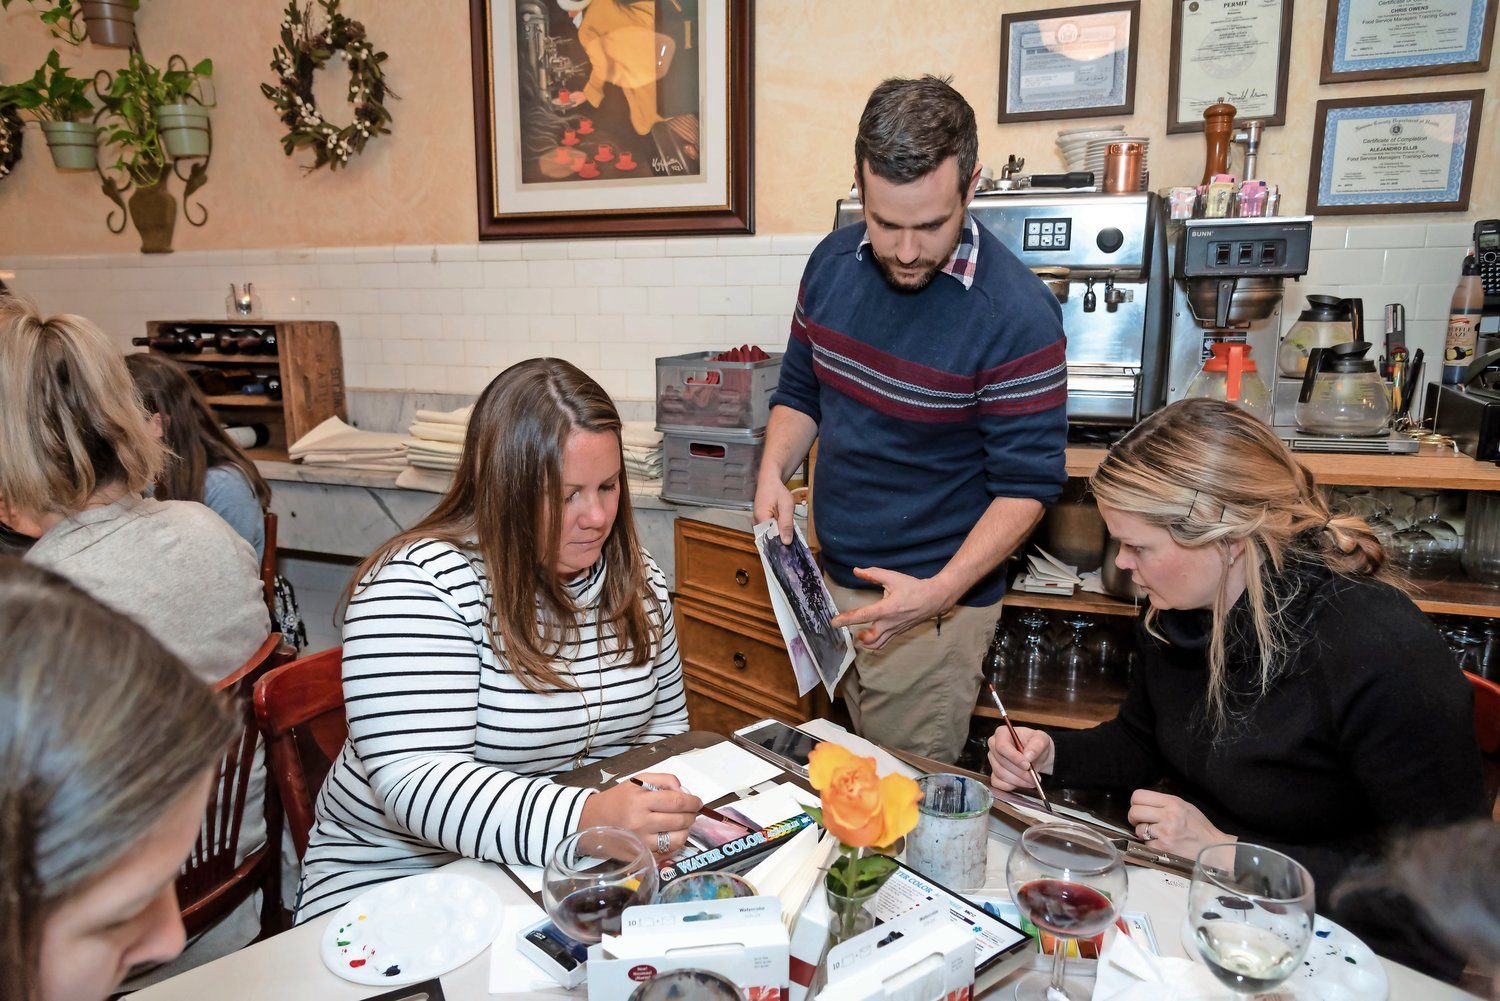 Vanessa Marks, left, and Jordan Loftus got an art lesson from NSMS art teacher Benjamin Benfield.